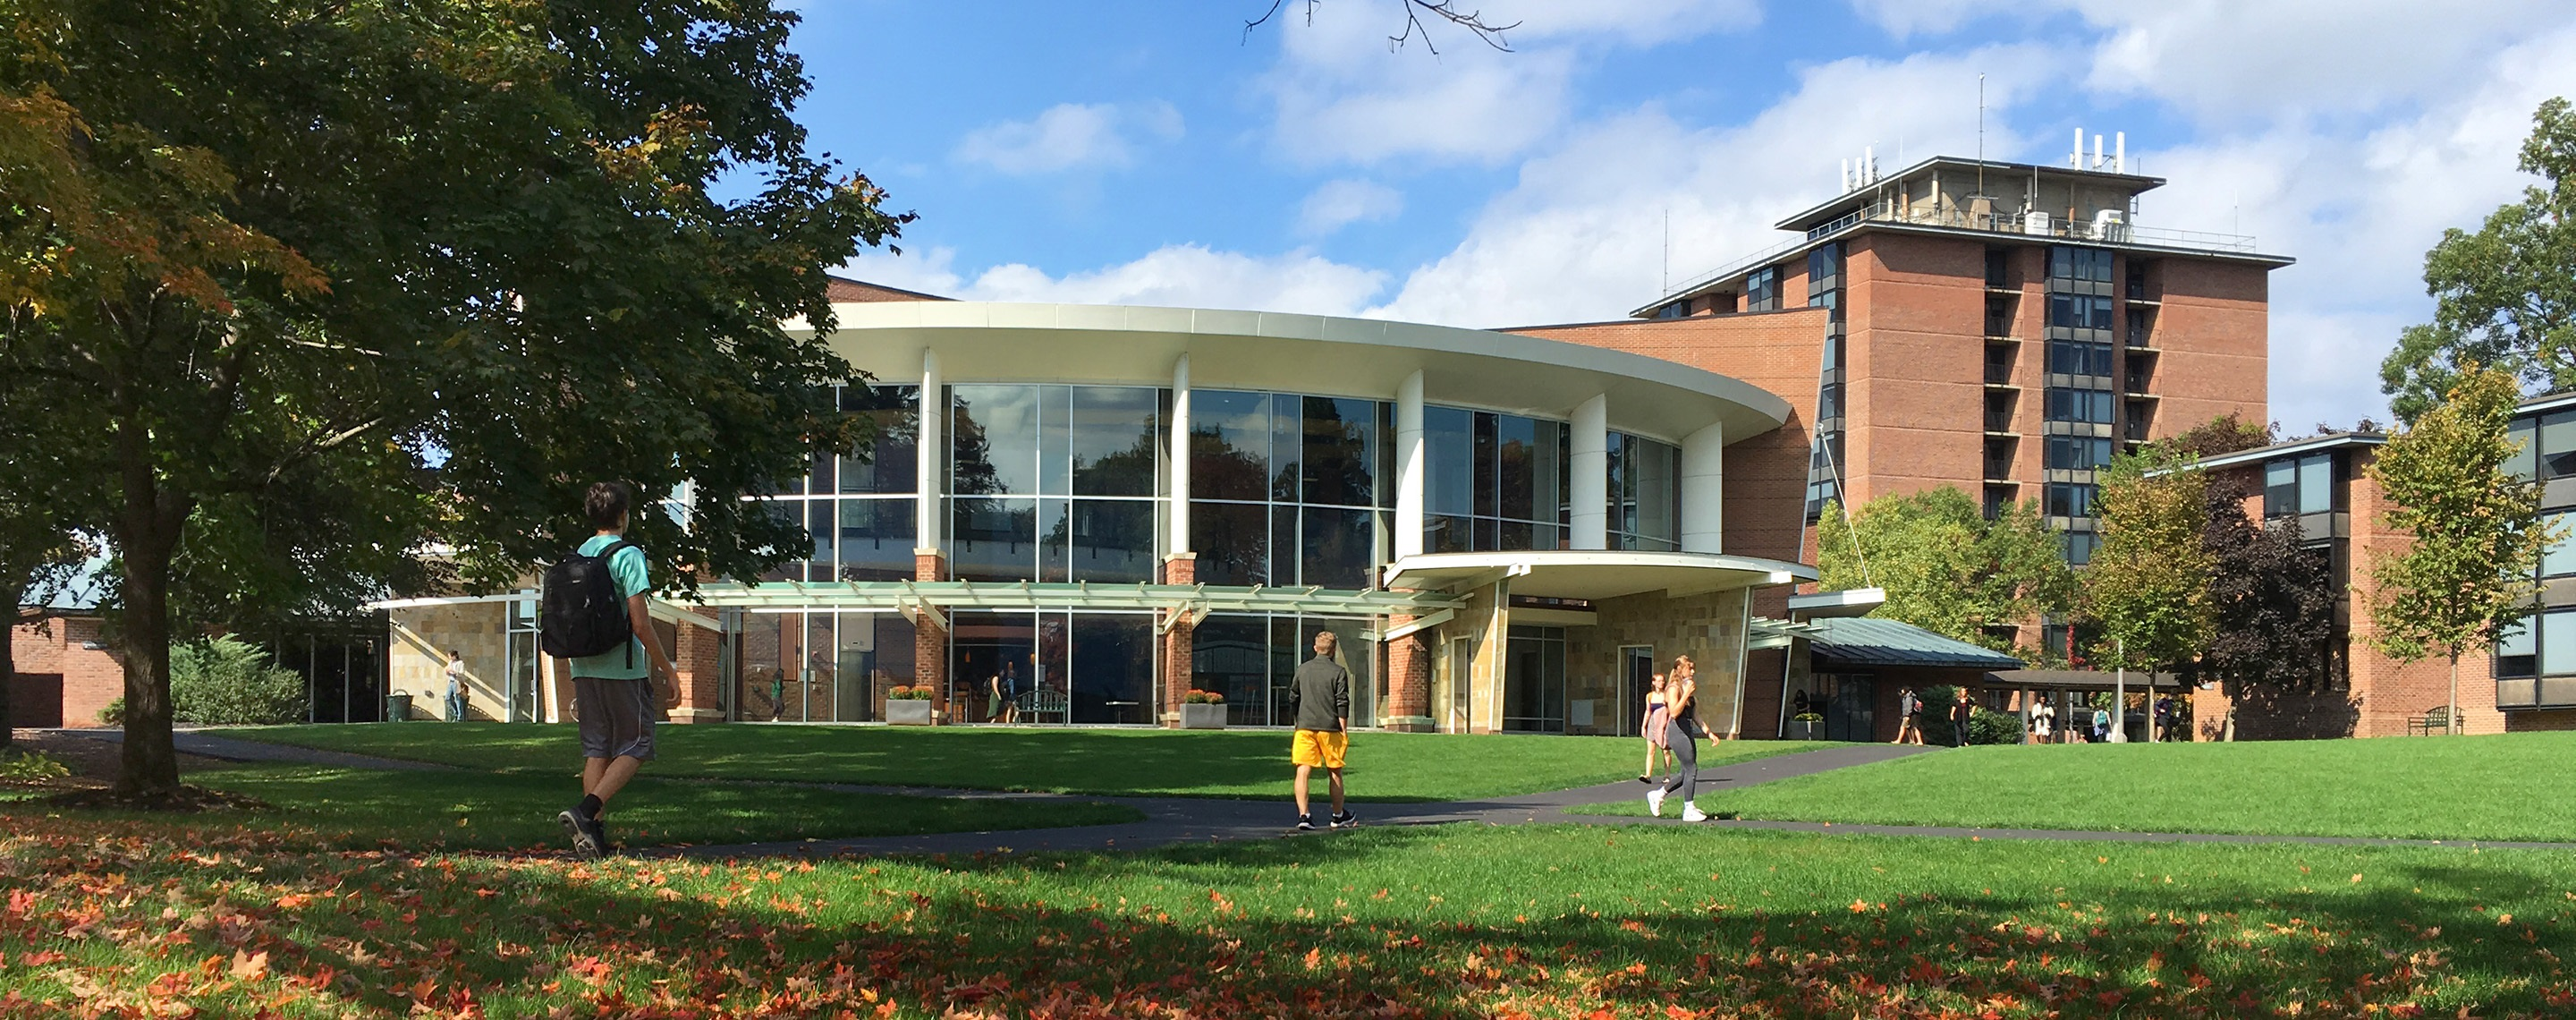 Apply To Skidmore College